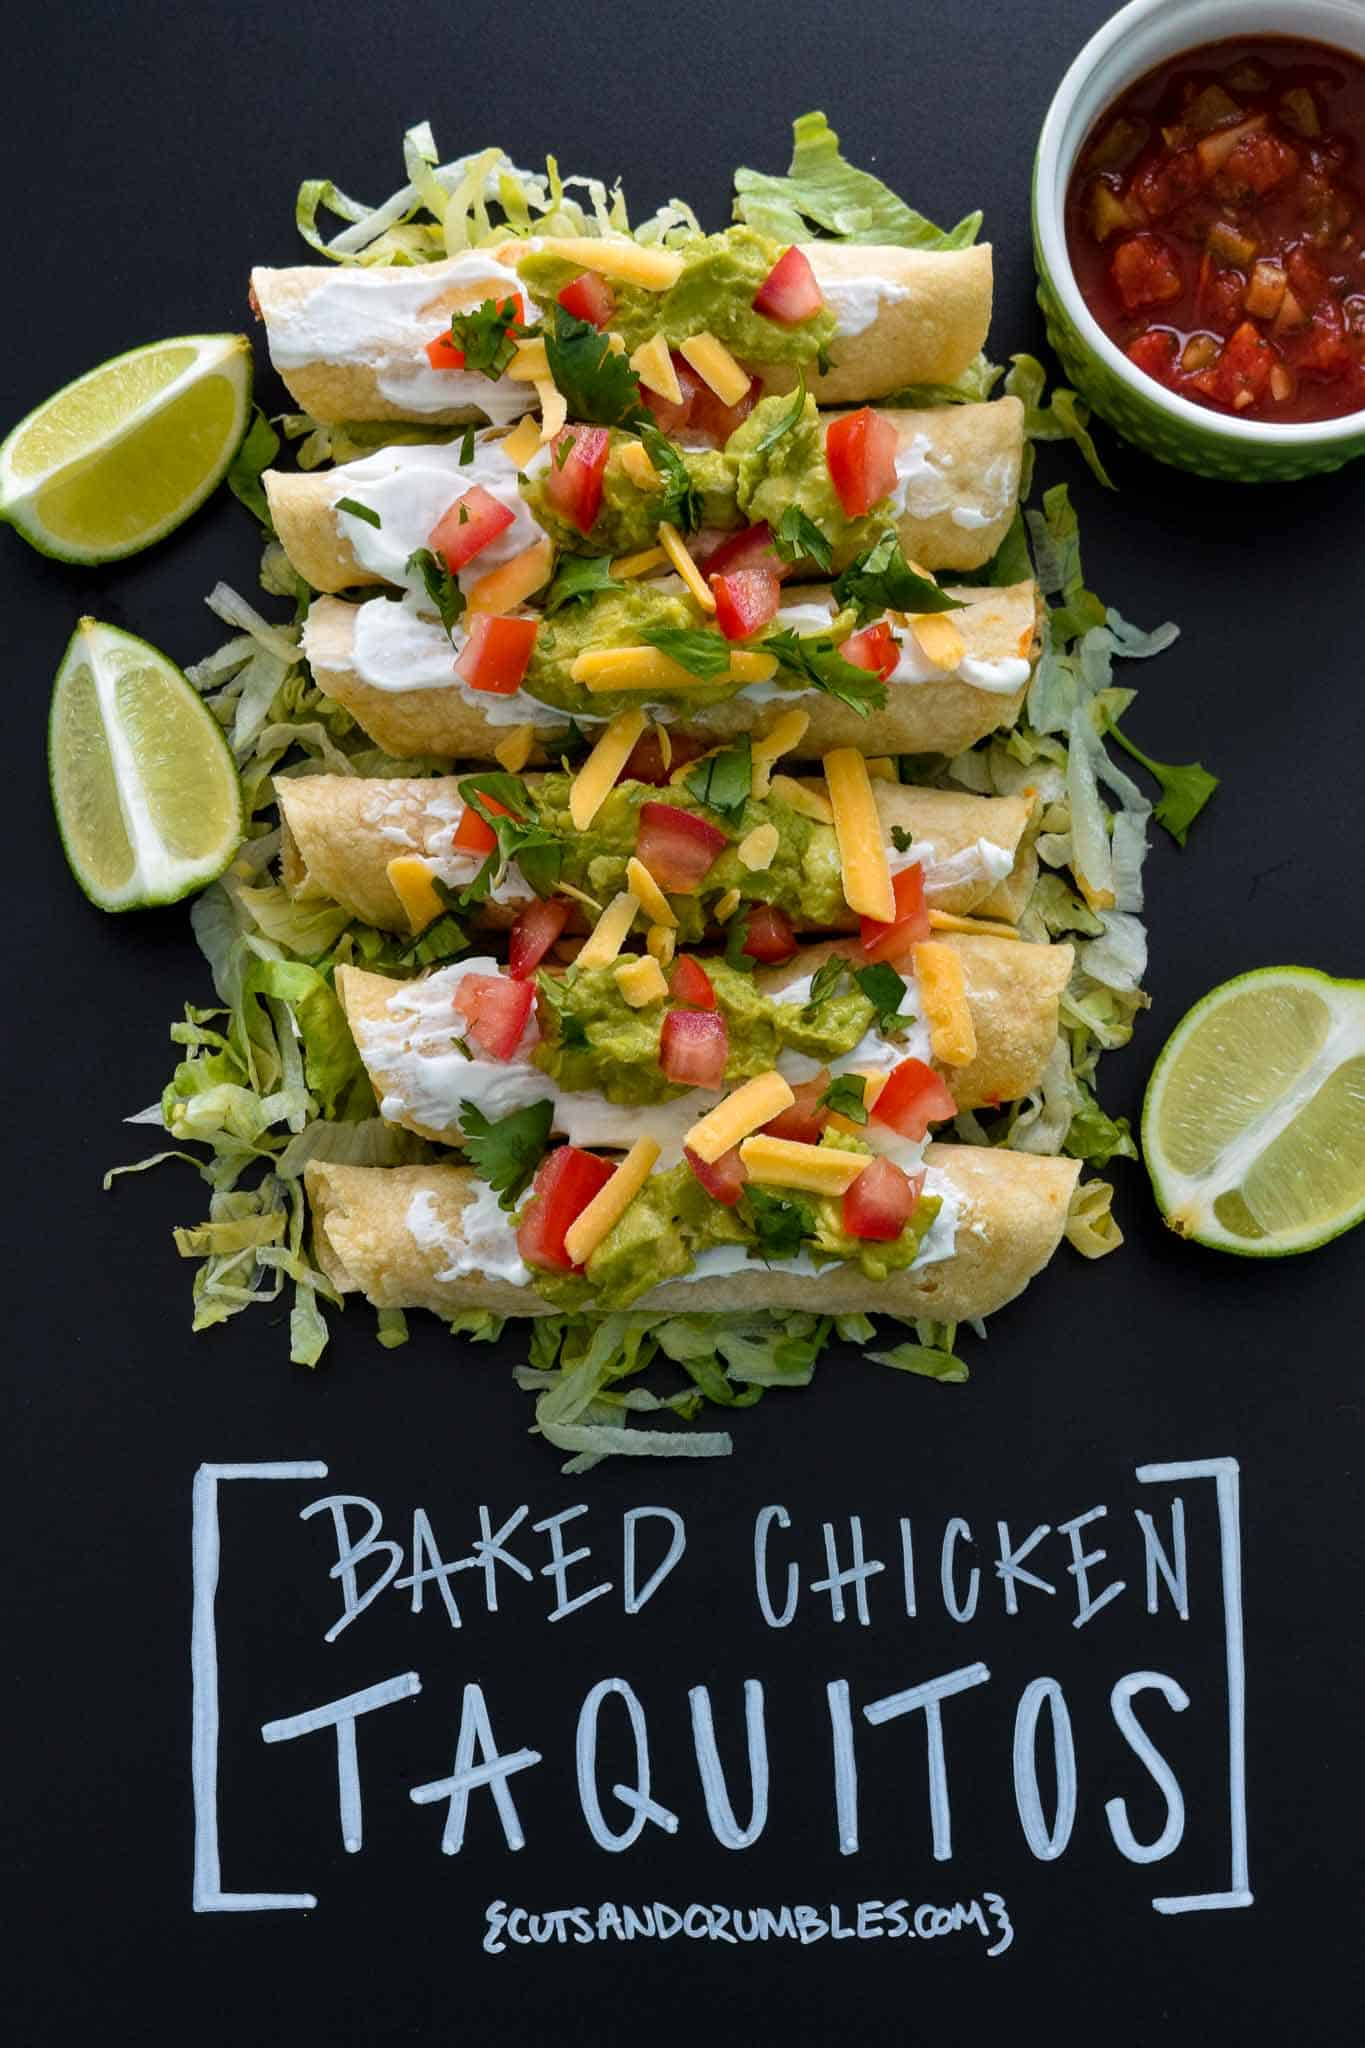 Baked Chicken Taquitos with title written on chalkboard